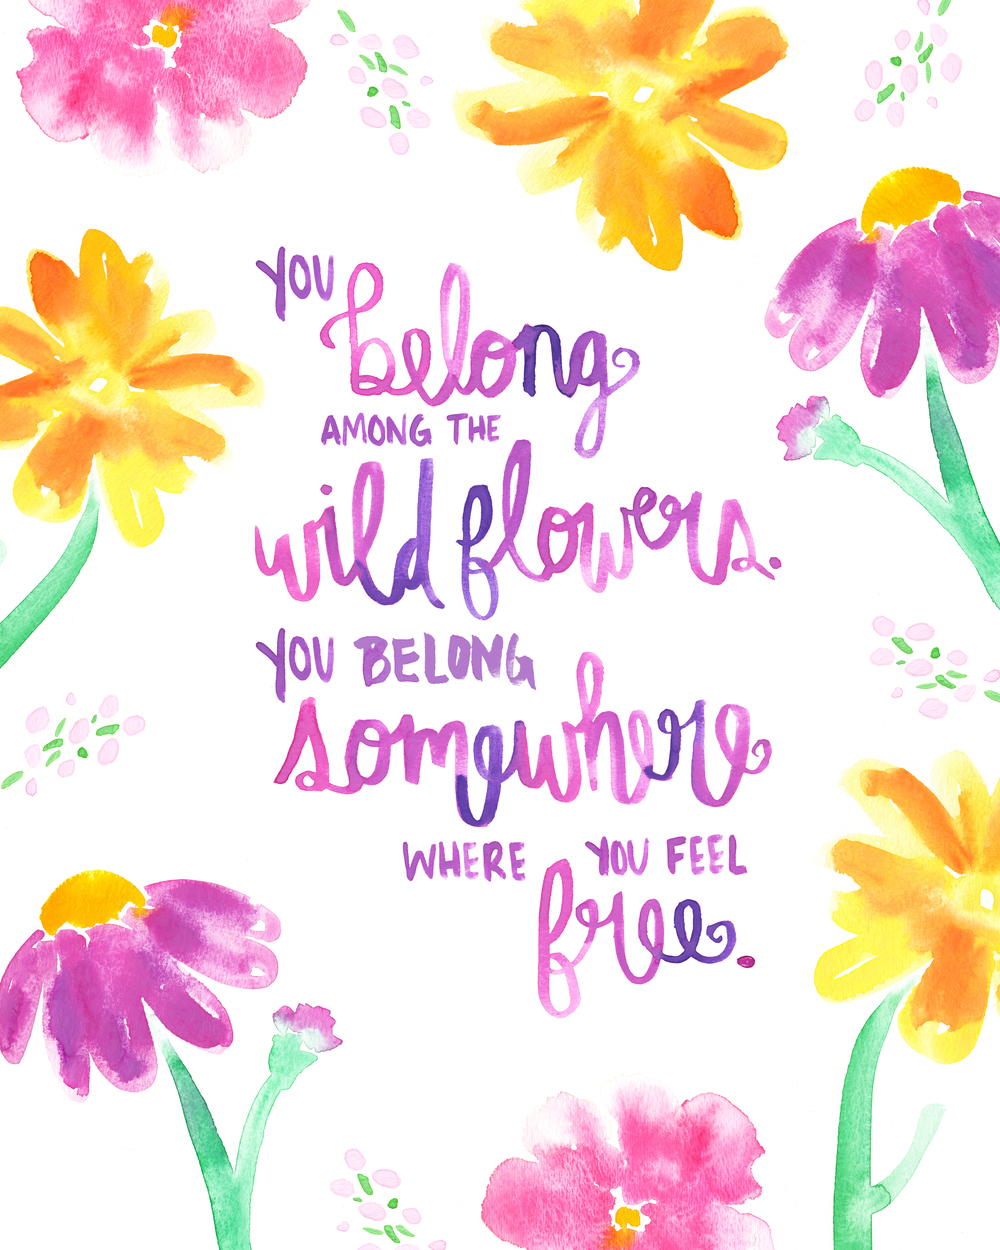 Free Print: You belong among the wild flowers... | Watercolor Painting & Watercolor Handlettering by Kristen Laczi of Hello Monday Design